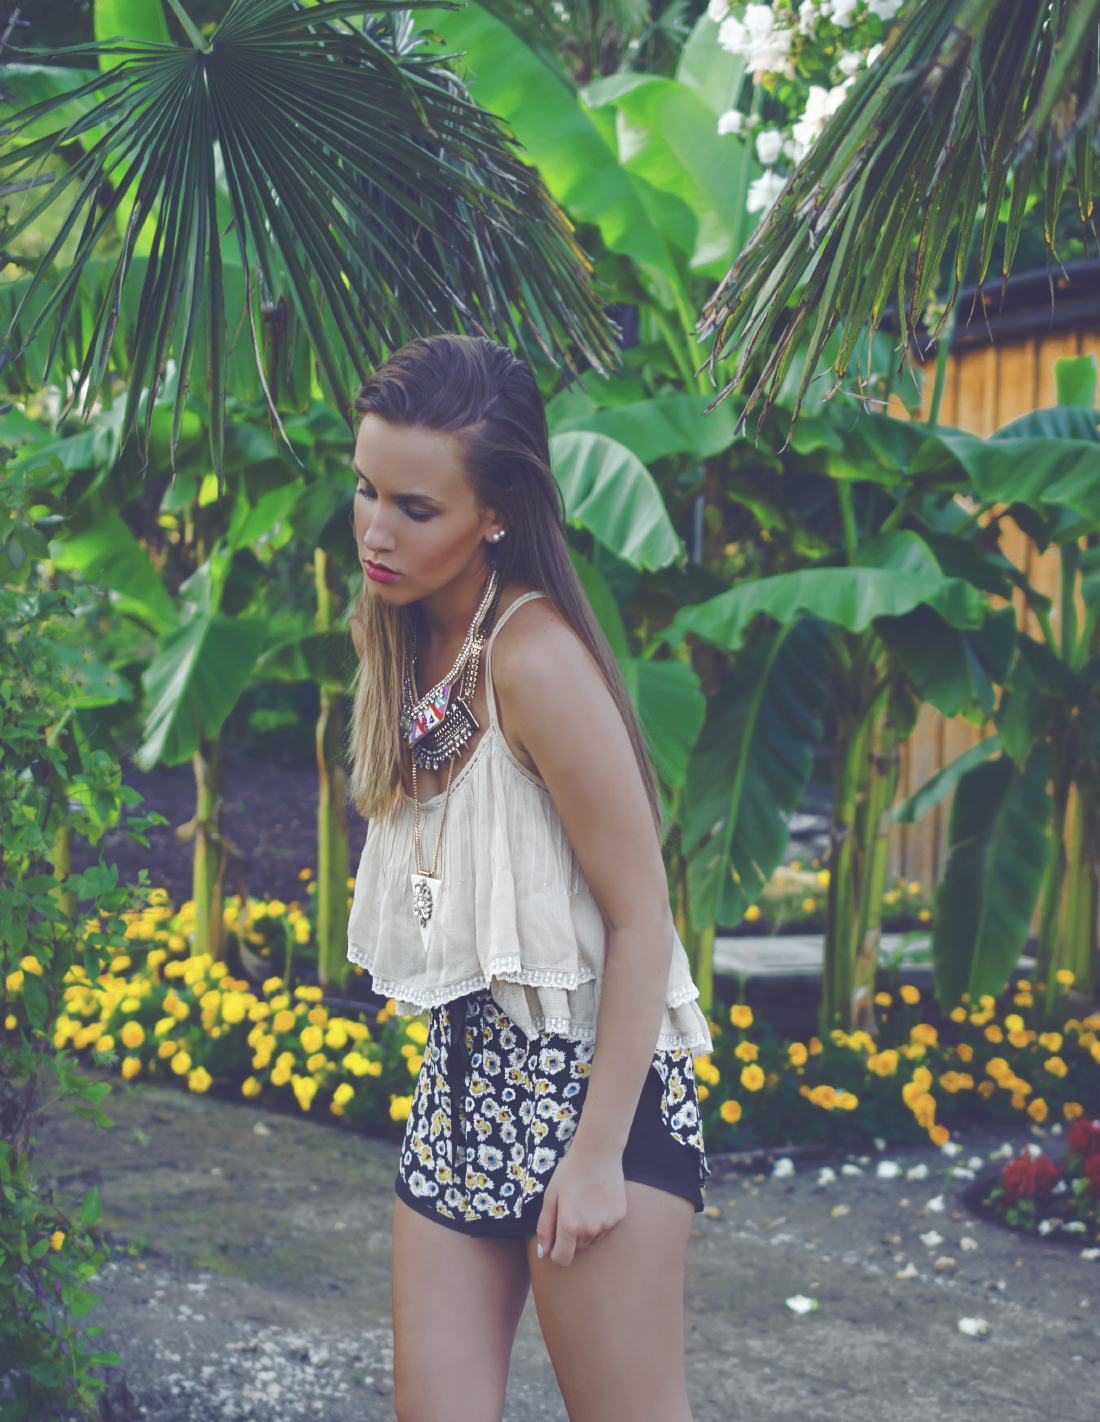 summer outfit palm trees jungle feeling